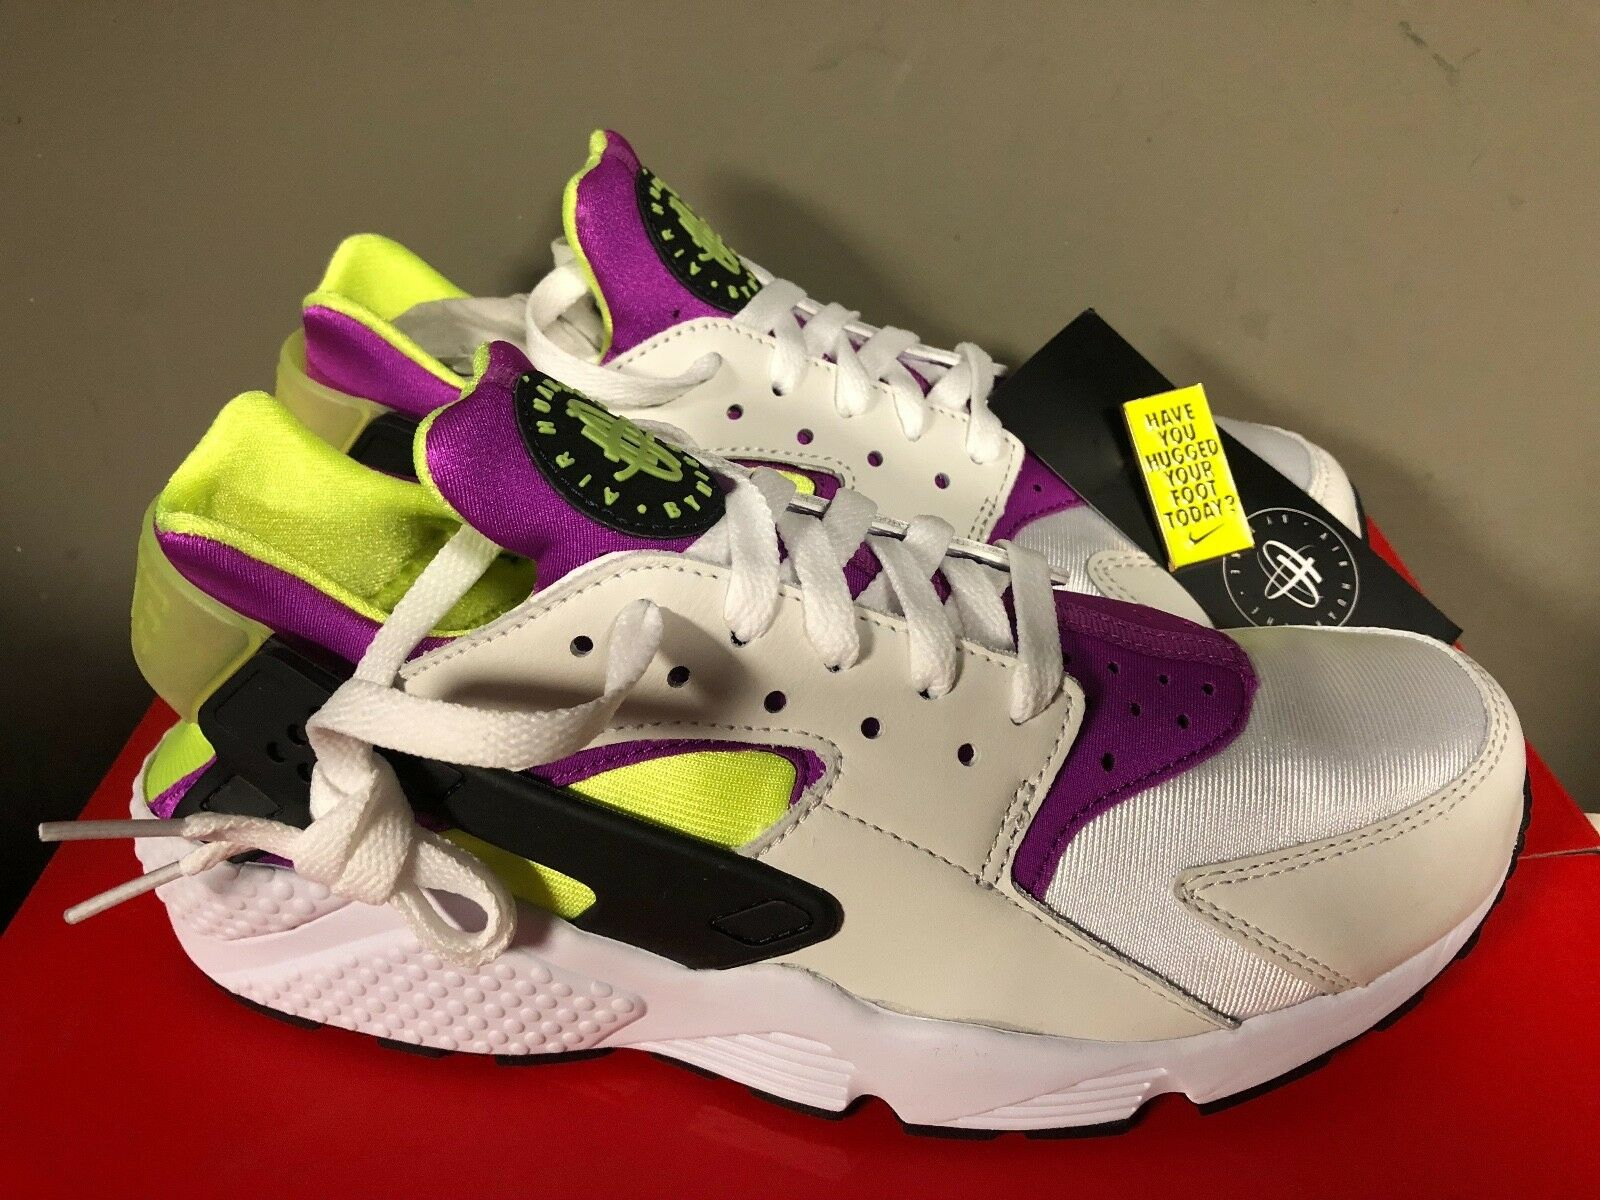 Nike Air Huarache Run '91 QS WHITE/BLACK-NEON YELLOW-MAGENTA AH8049-101 NEW 2018